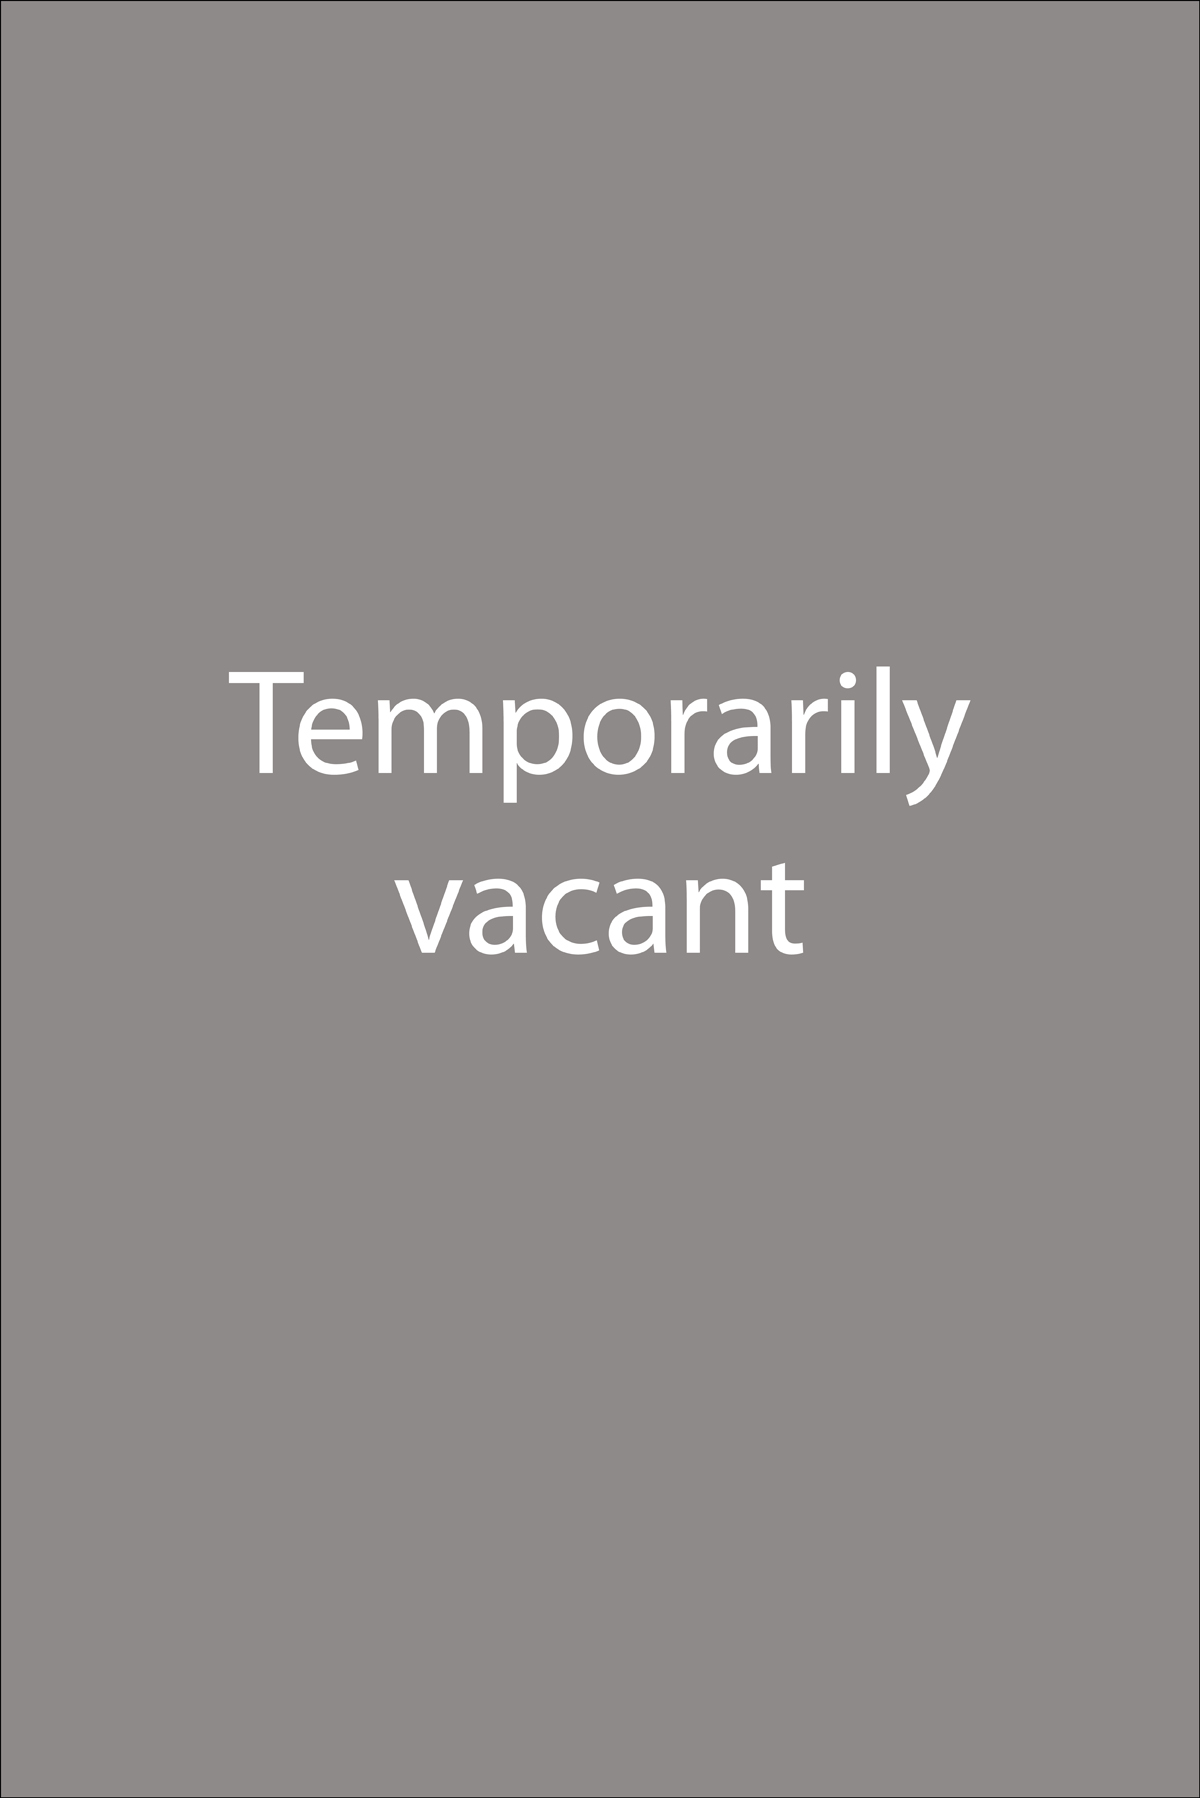 Temporarily vacant